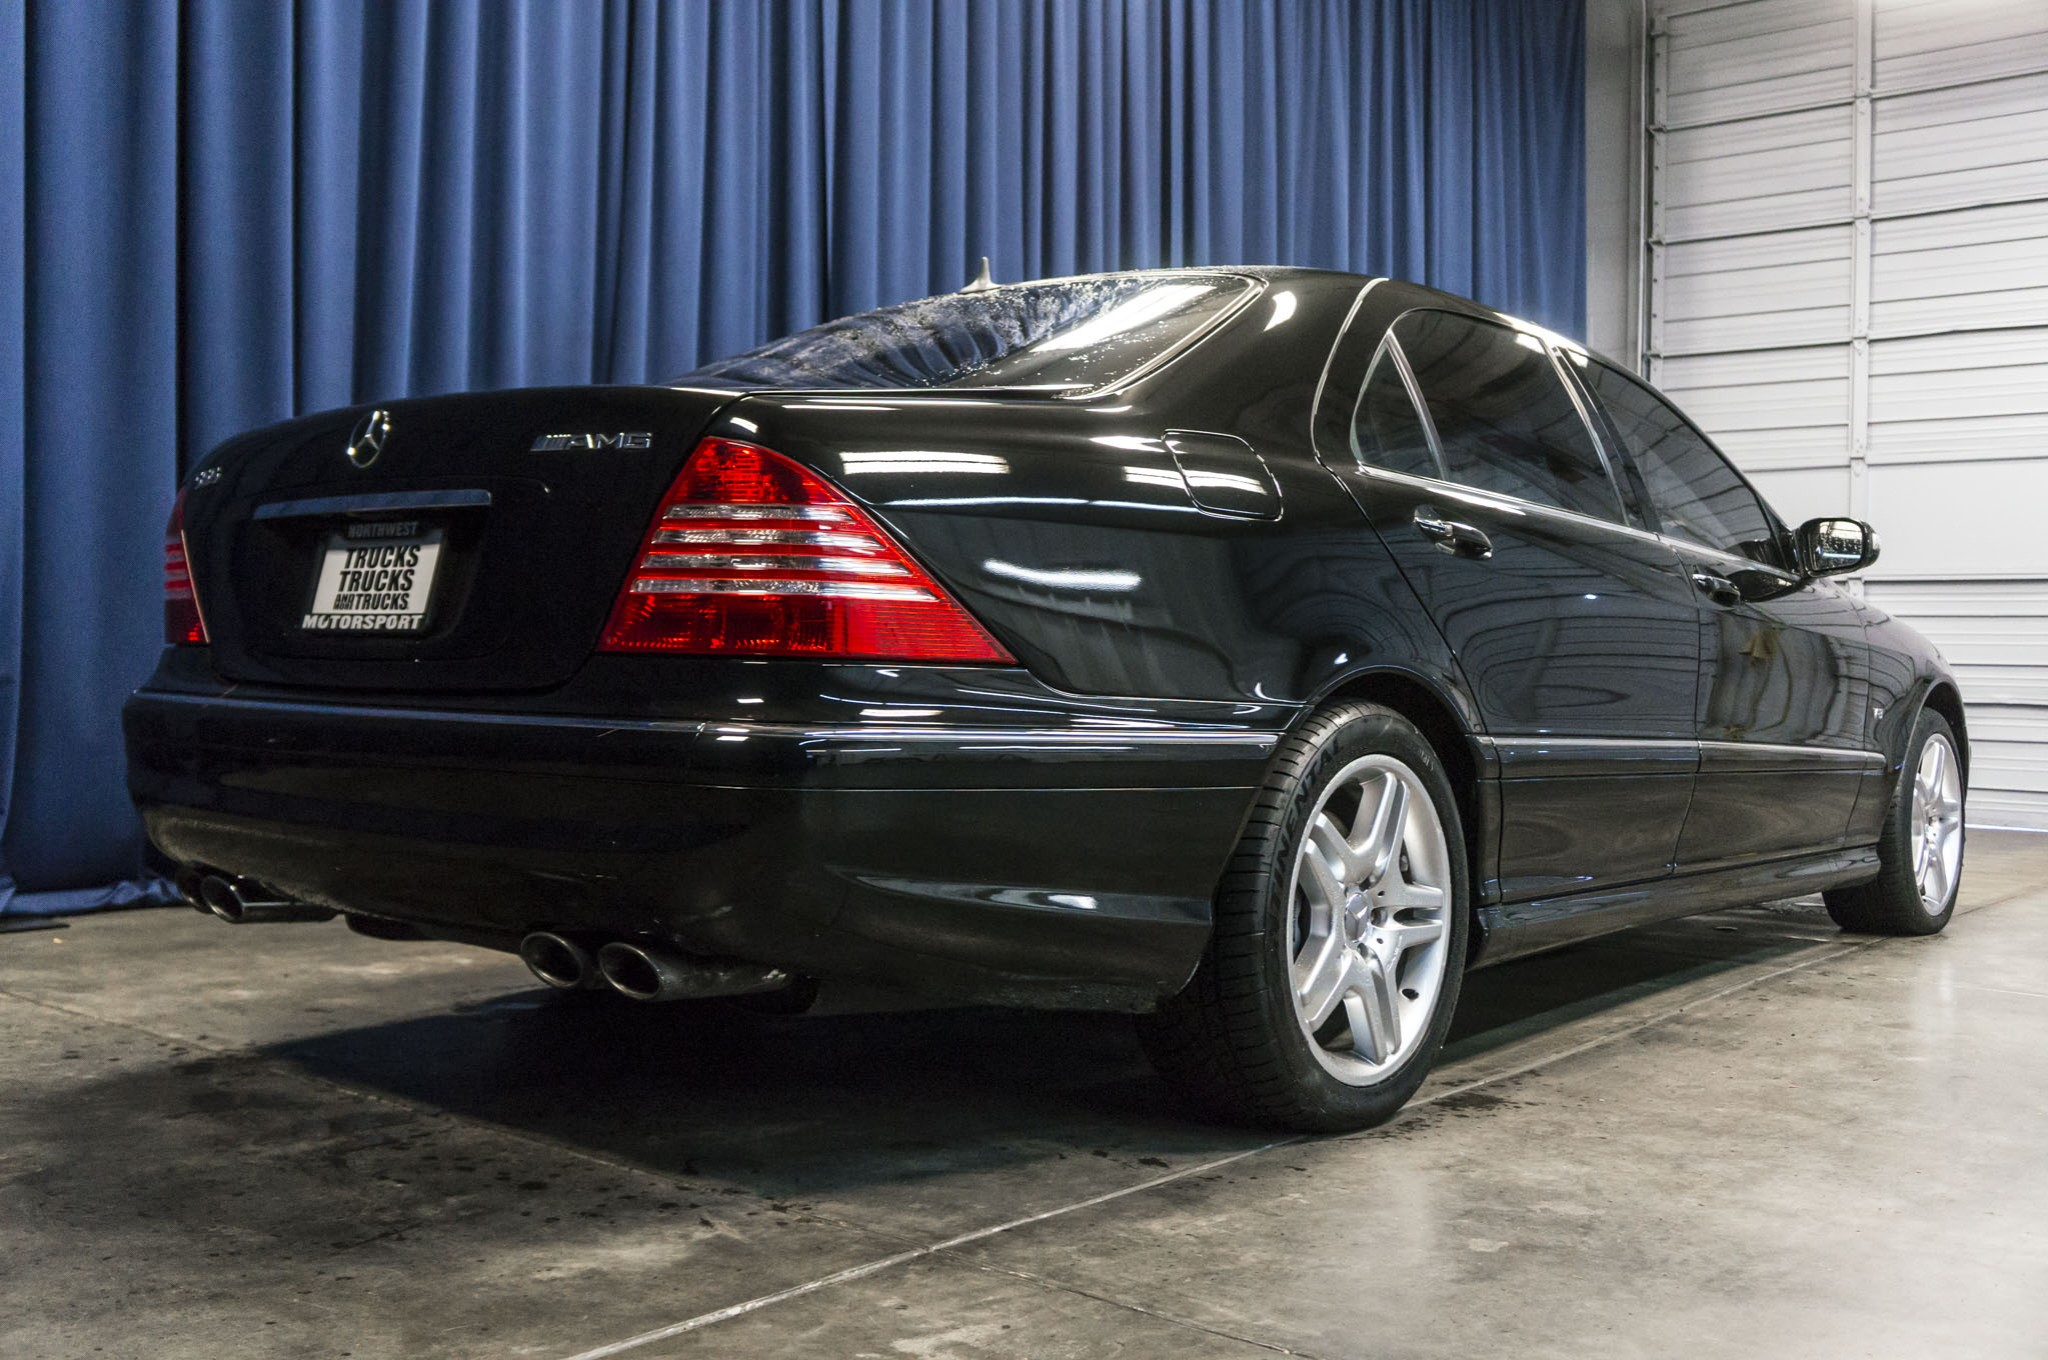 Used 2003 mercedes benz s55 amg rwd sedan for sale northwest used 2003 mercedes benz s55 amg rwd sedan for sale northwest motorsport sciox Image collections